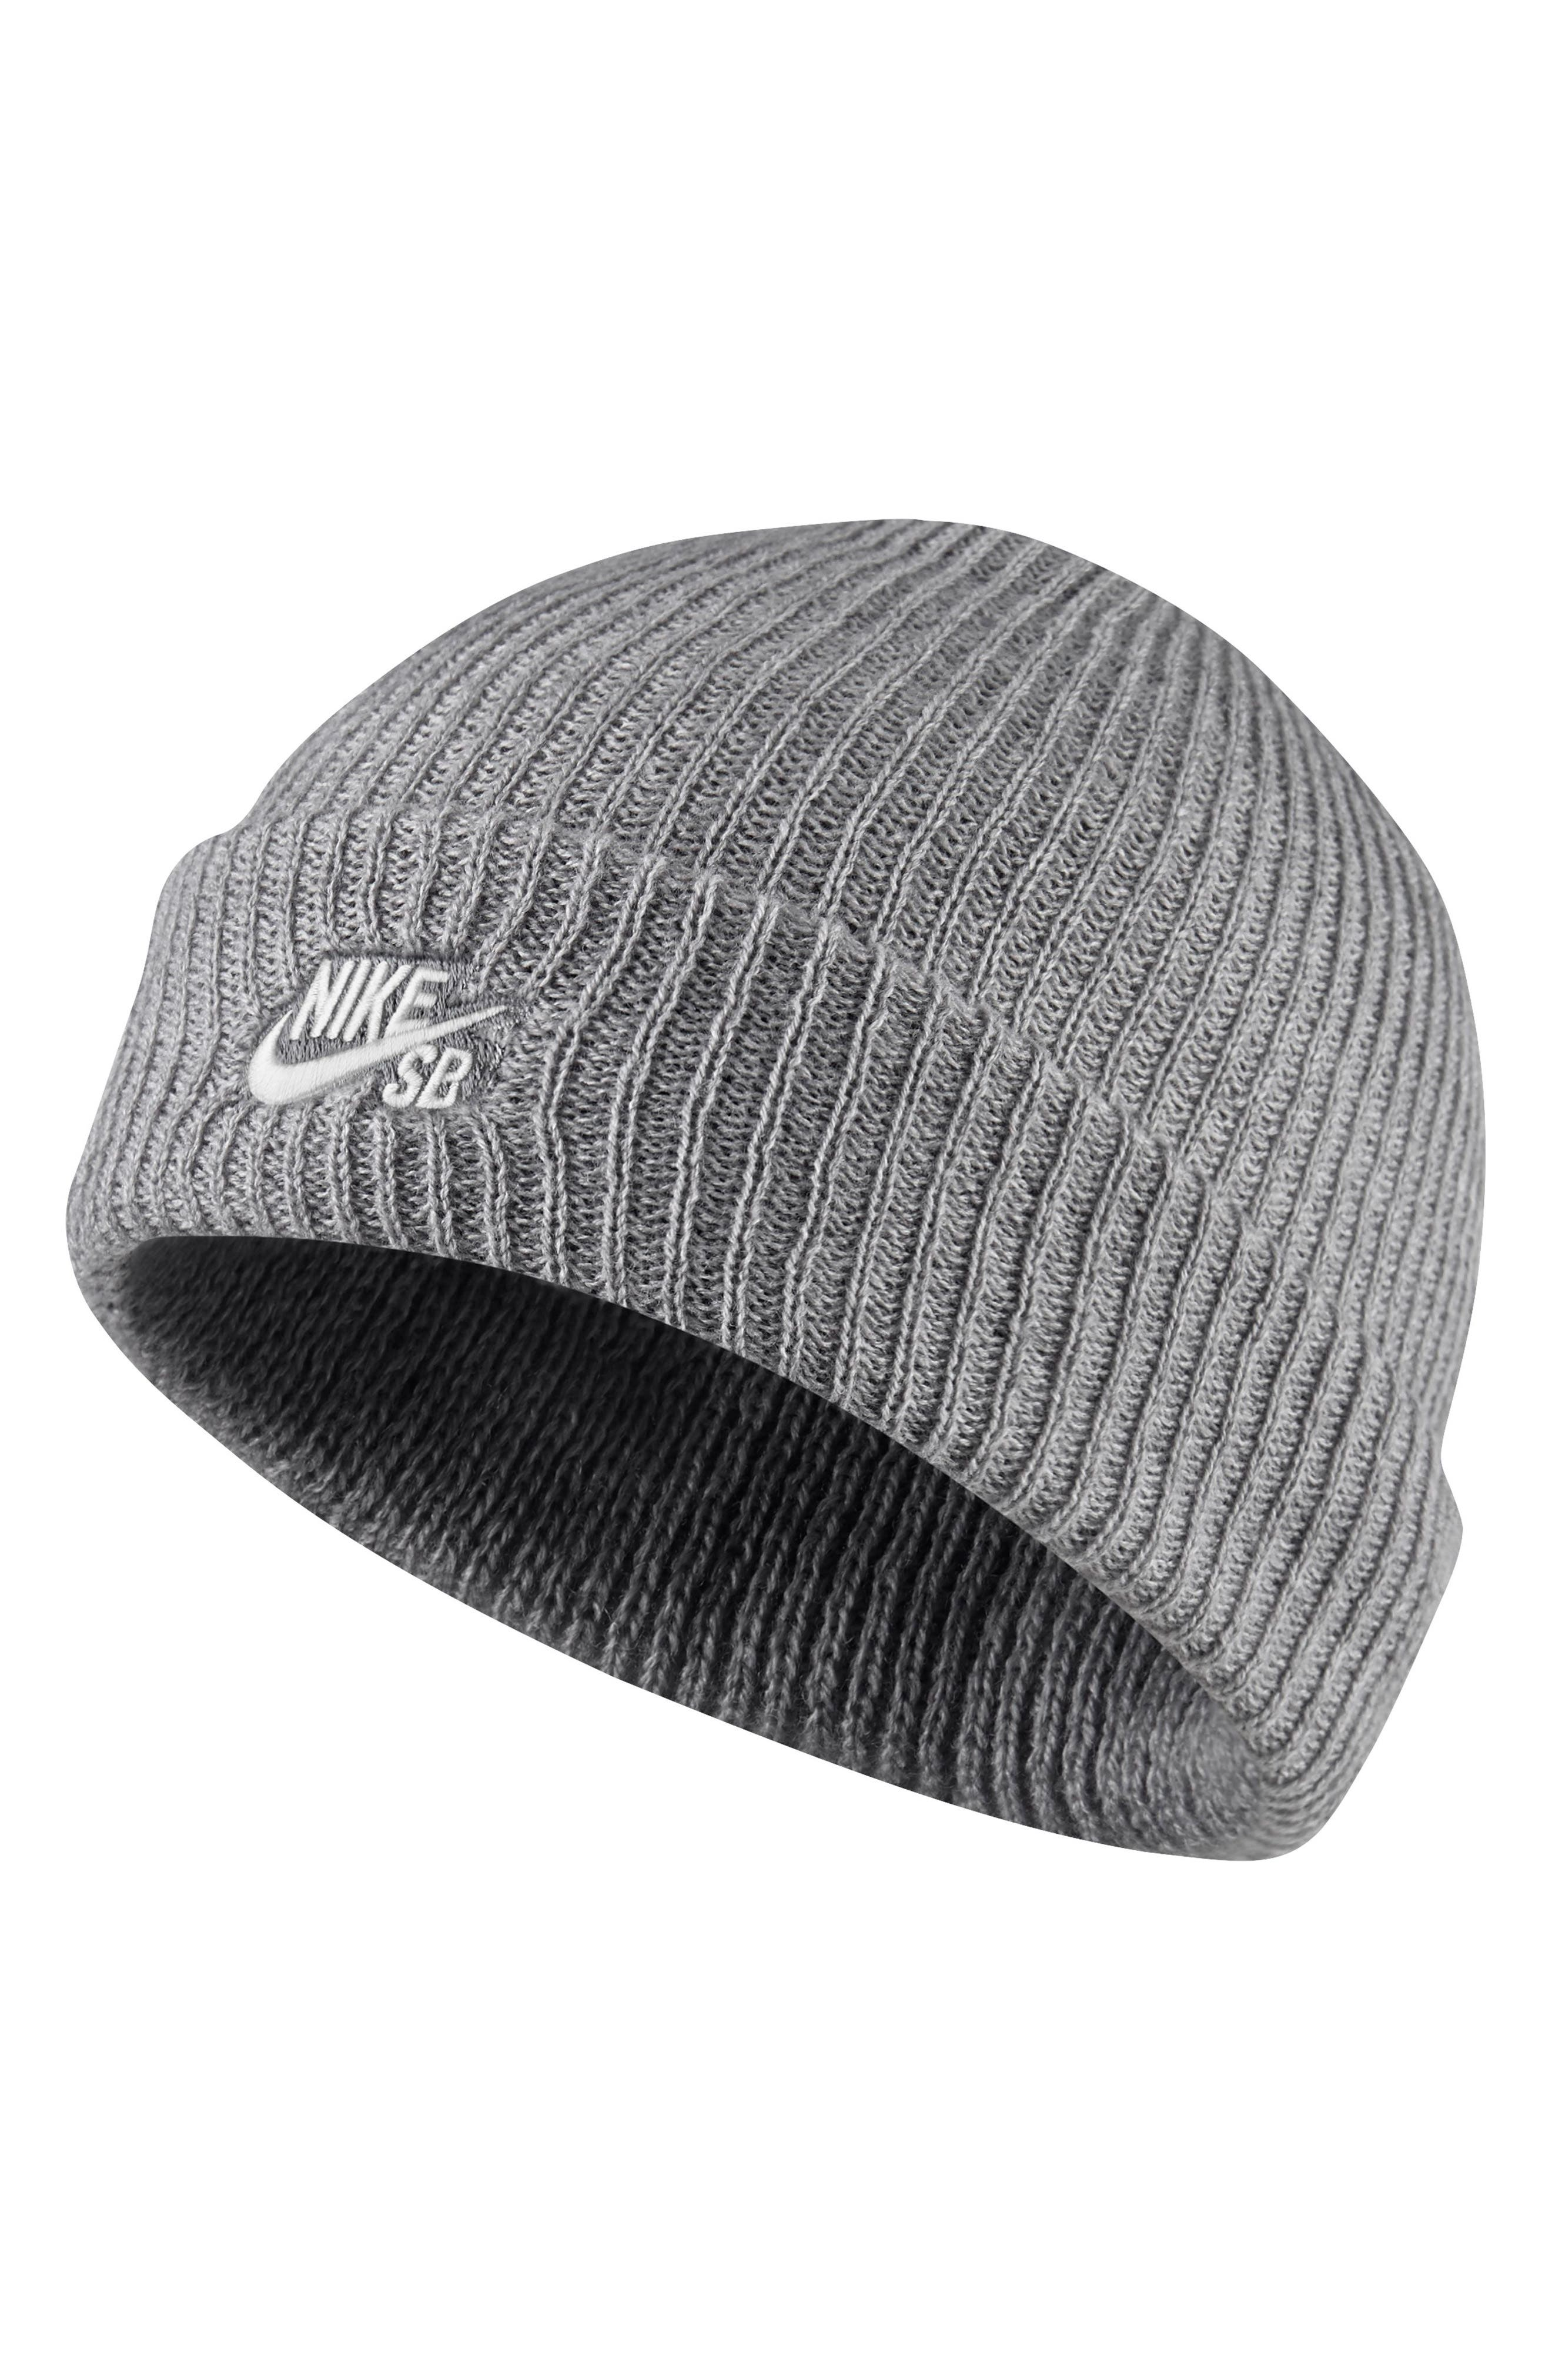 Fisherman Cap, Main, color, DARK GREY HEATHER/WHITE